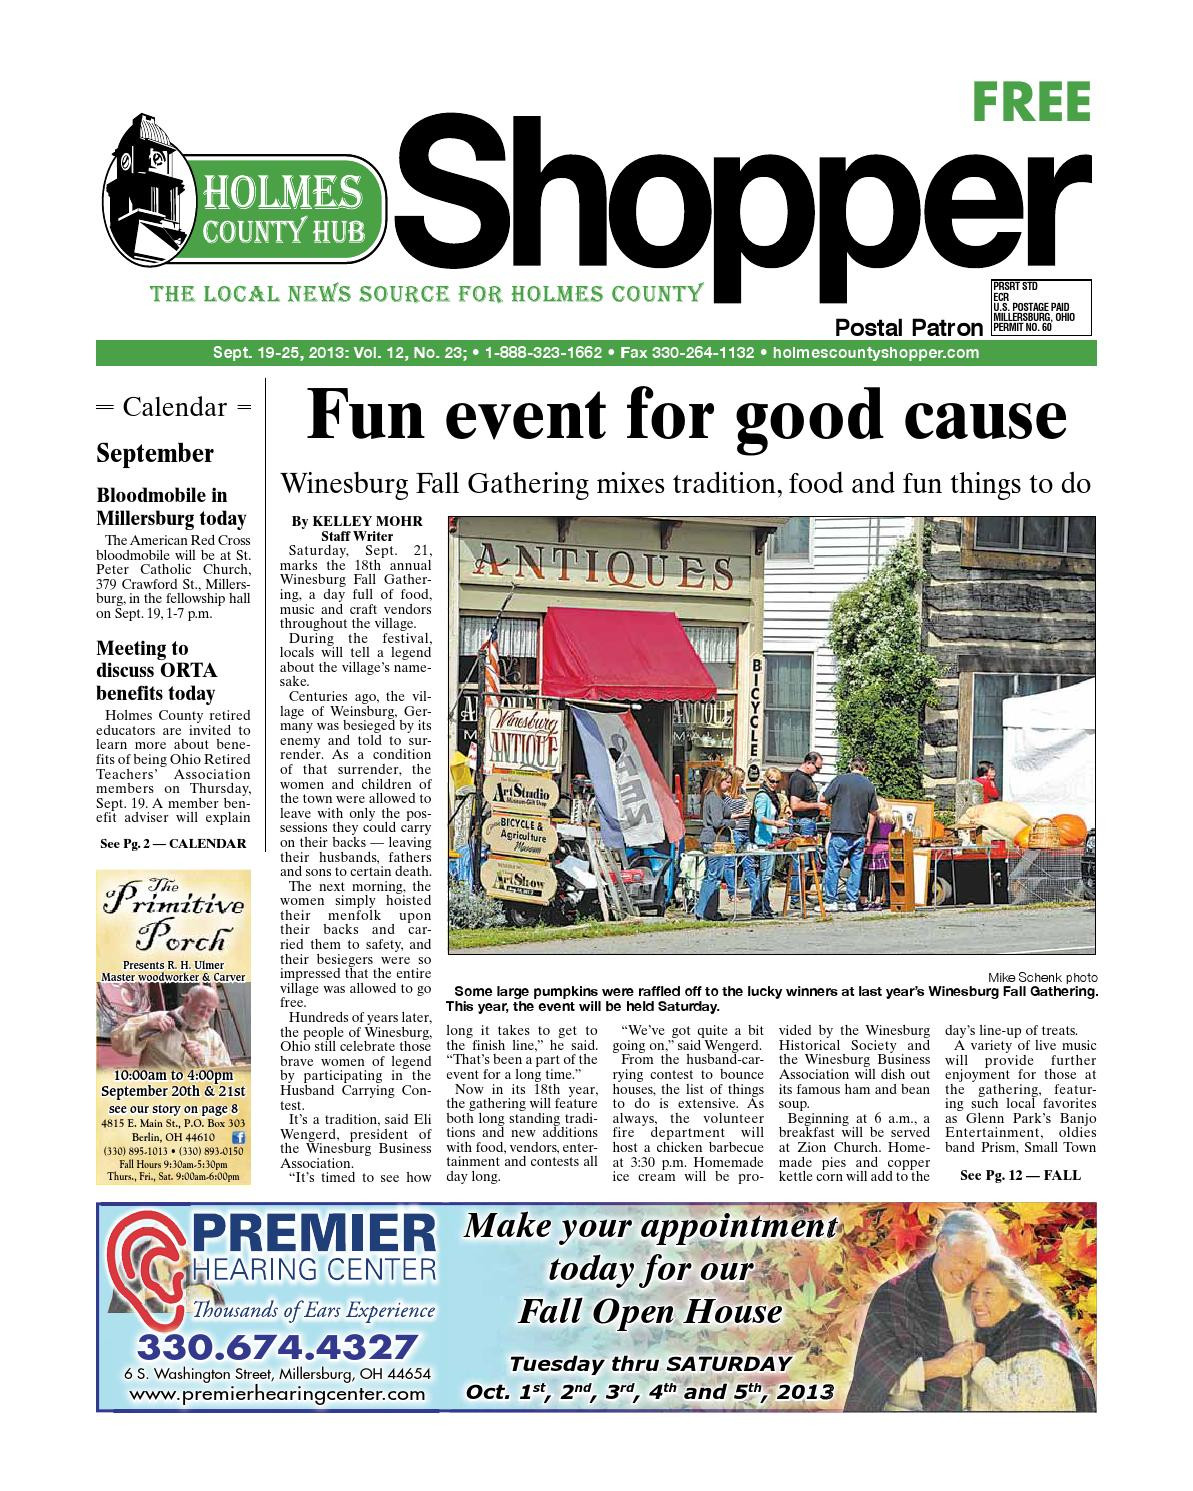 Holmes County Hub Shopper Sept 19 2013 By Gannett NEO Issuu